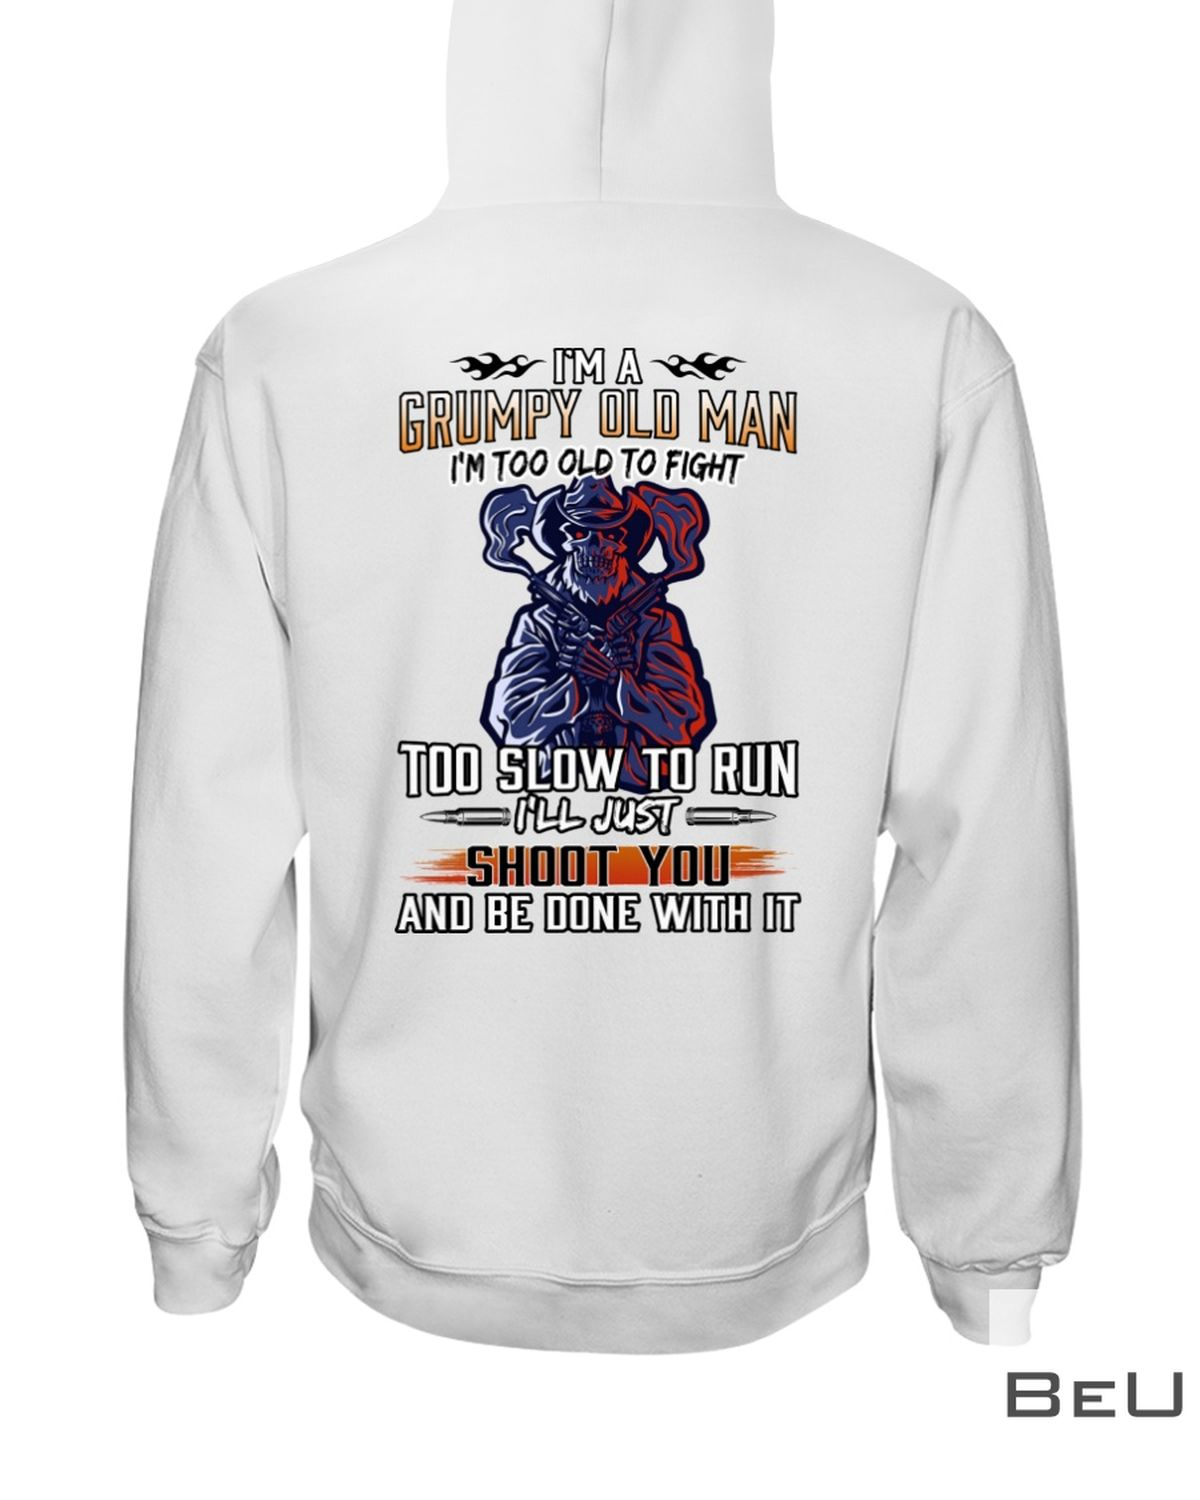 I'm A Grumpy Old Man I'm Too Old To Fight Too Slow To Run I'll Just Shoot You And Be Done With It Shirtz